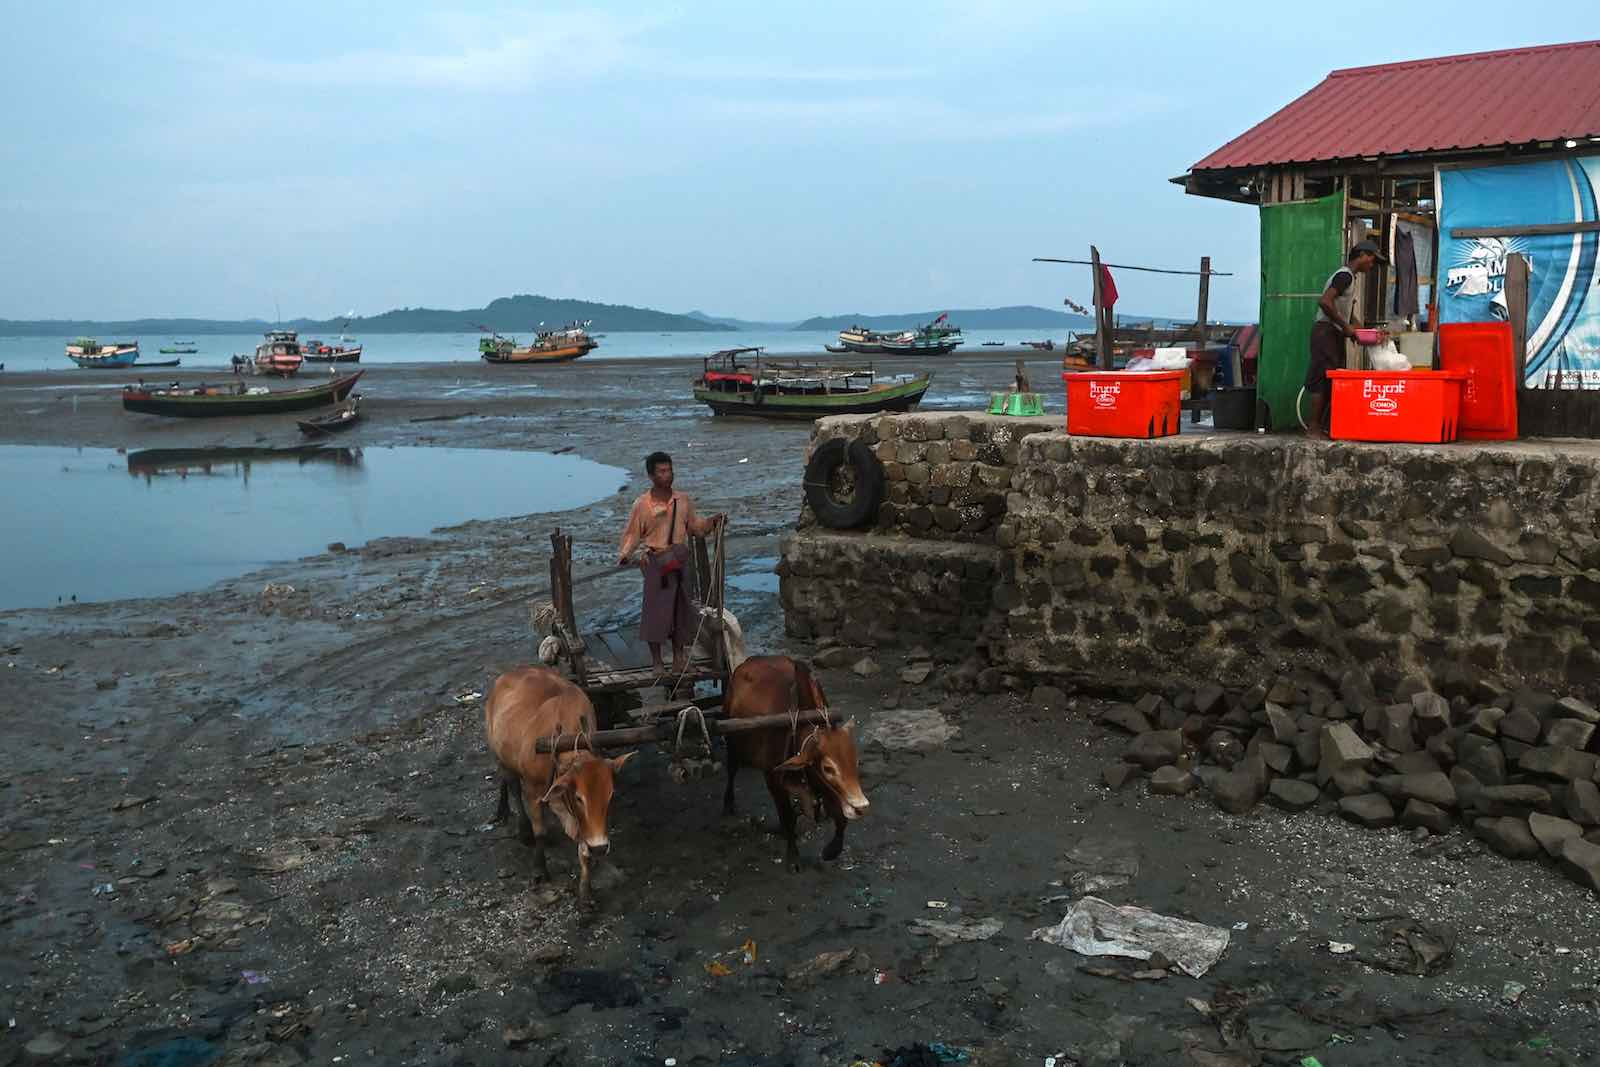 A man transports goods to shore at Japanma jetty in Kyaukphyu, Rakhine state, where China is financing a deep-sea port and a special economic zone, October 2019 (Photo: Ye Aung Thu/AFP via Getty)